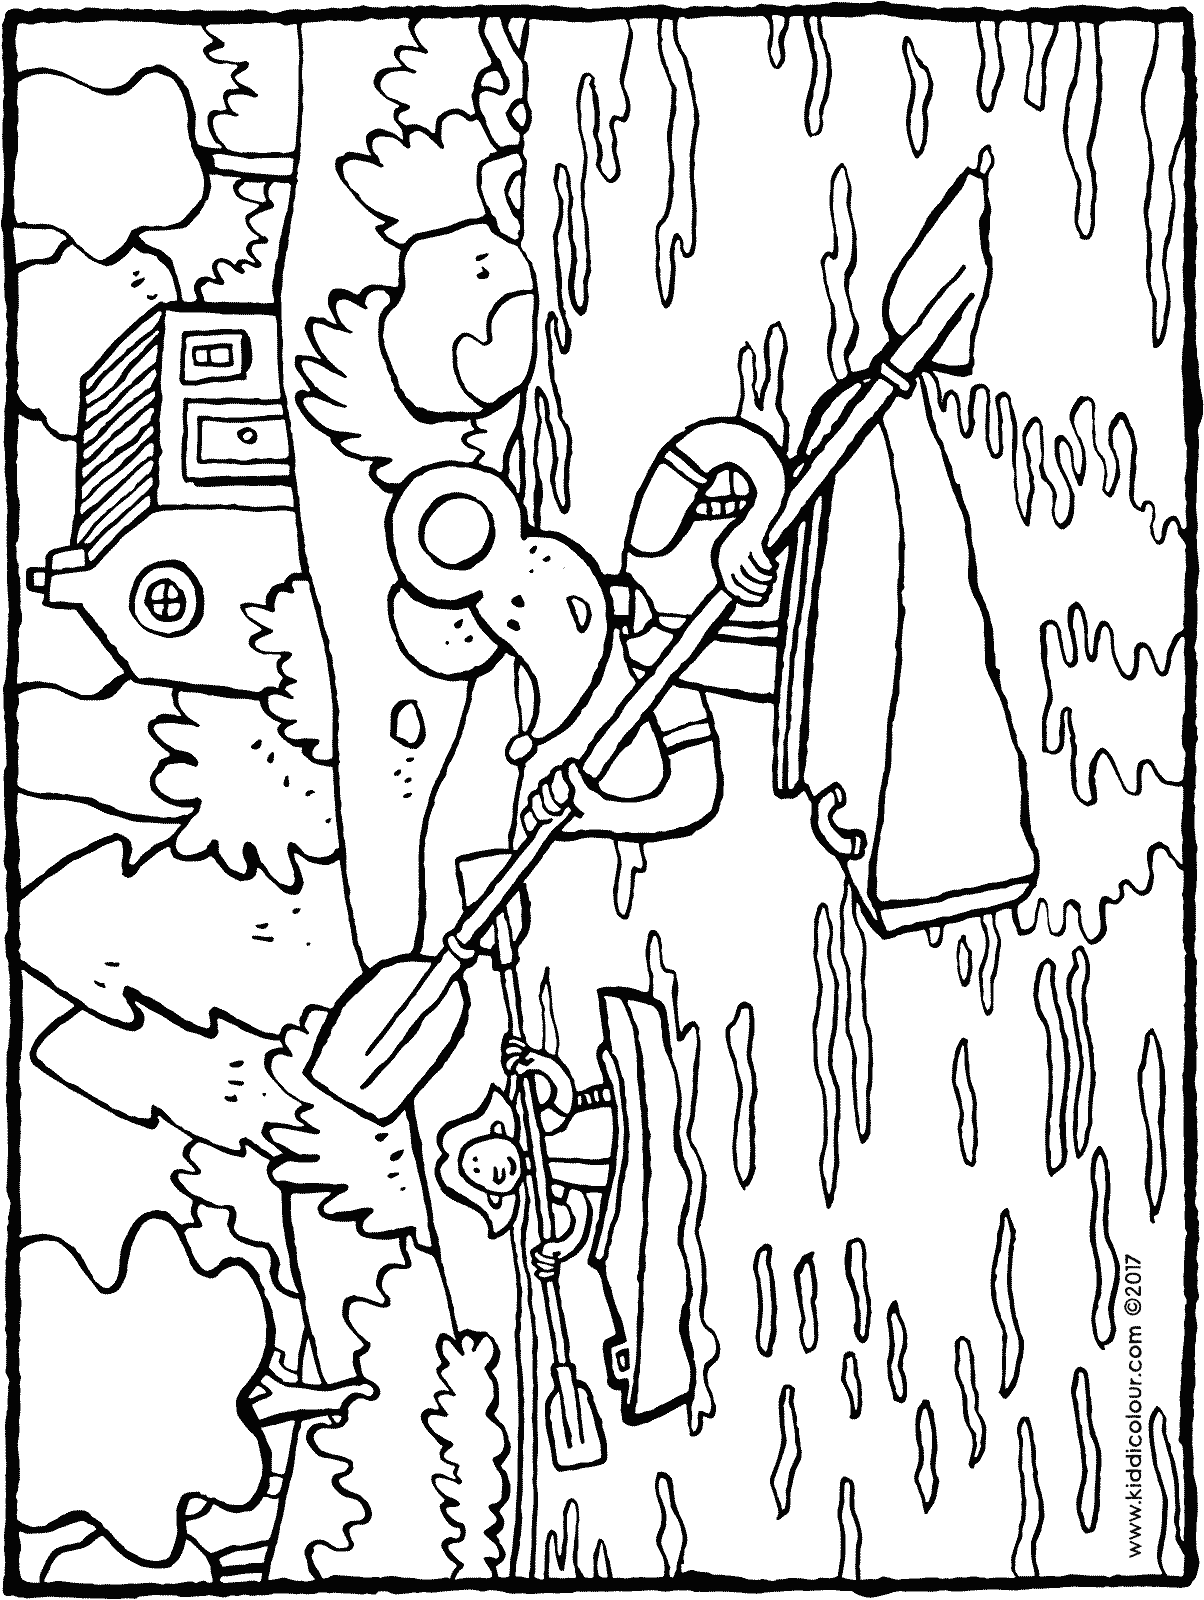 Emma and Thomas kayaking colouring page drawing picture 01H